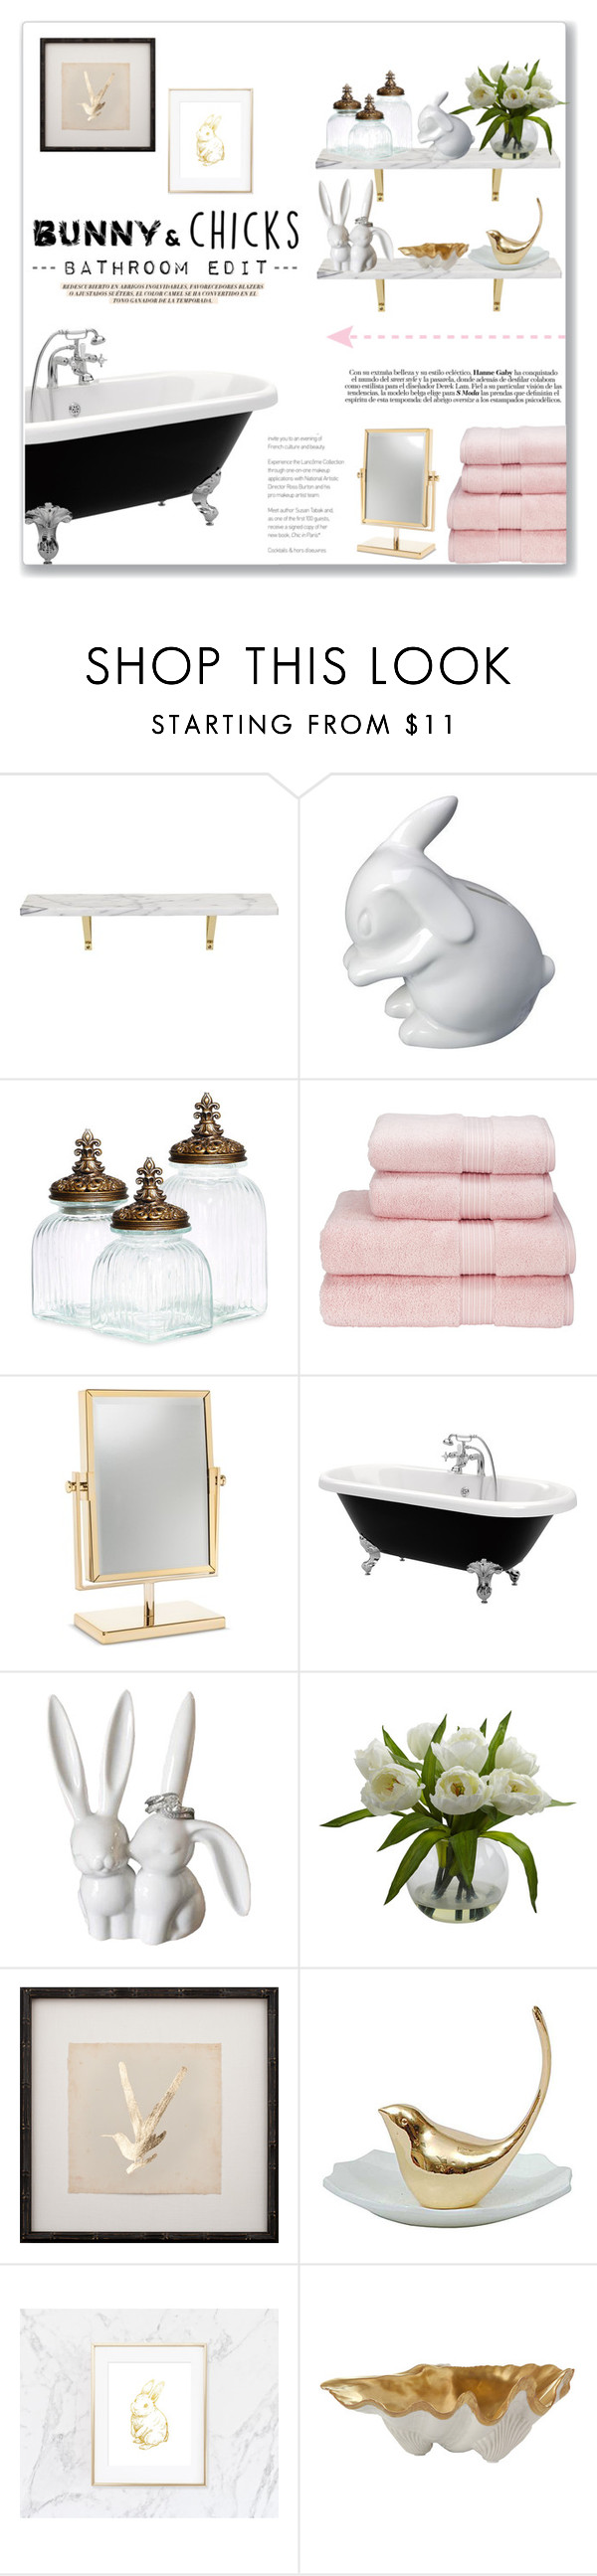 """""""Easter Update: Bathroom Edit"""" by lauren-a-j-reid ❤ liked on Polyvore featuring interior, interiors, interior design, home, home decor, interior decorating, CB2, Dot & Bo, Nearly Natural and Zara"""